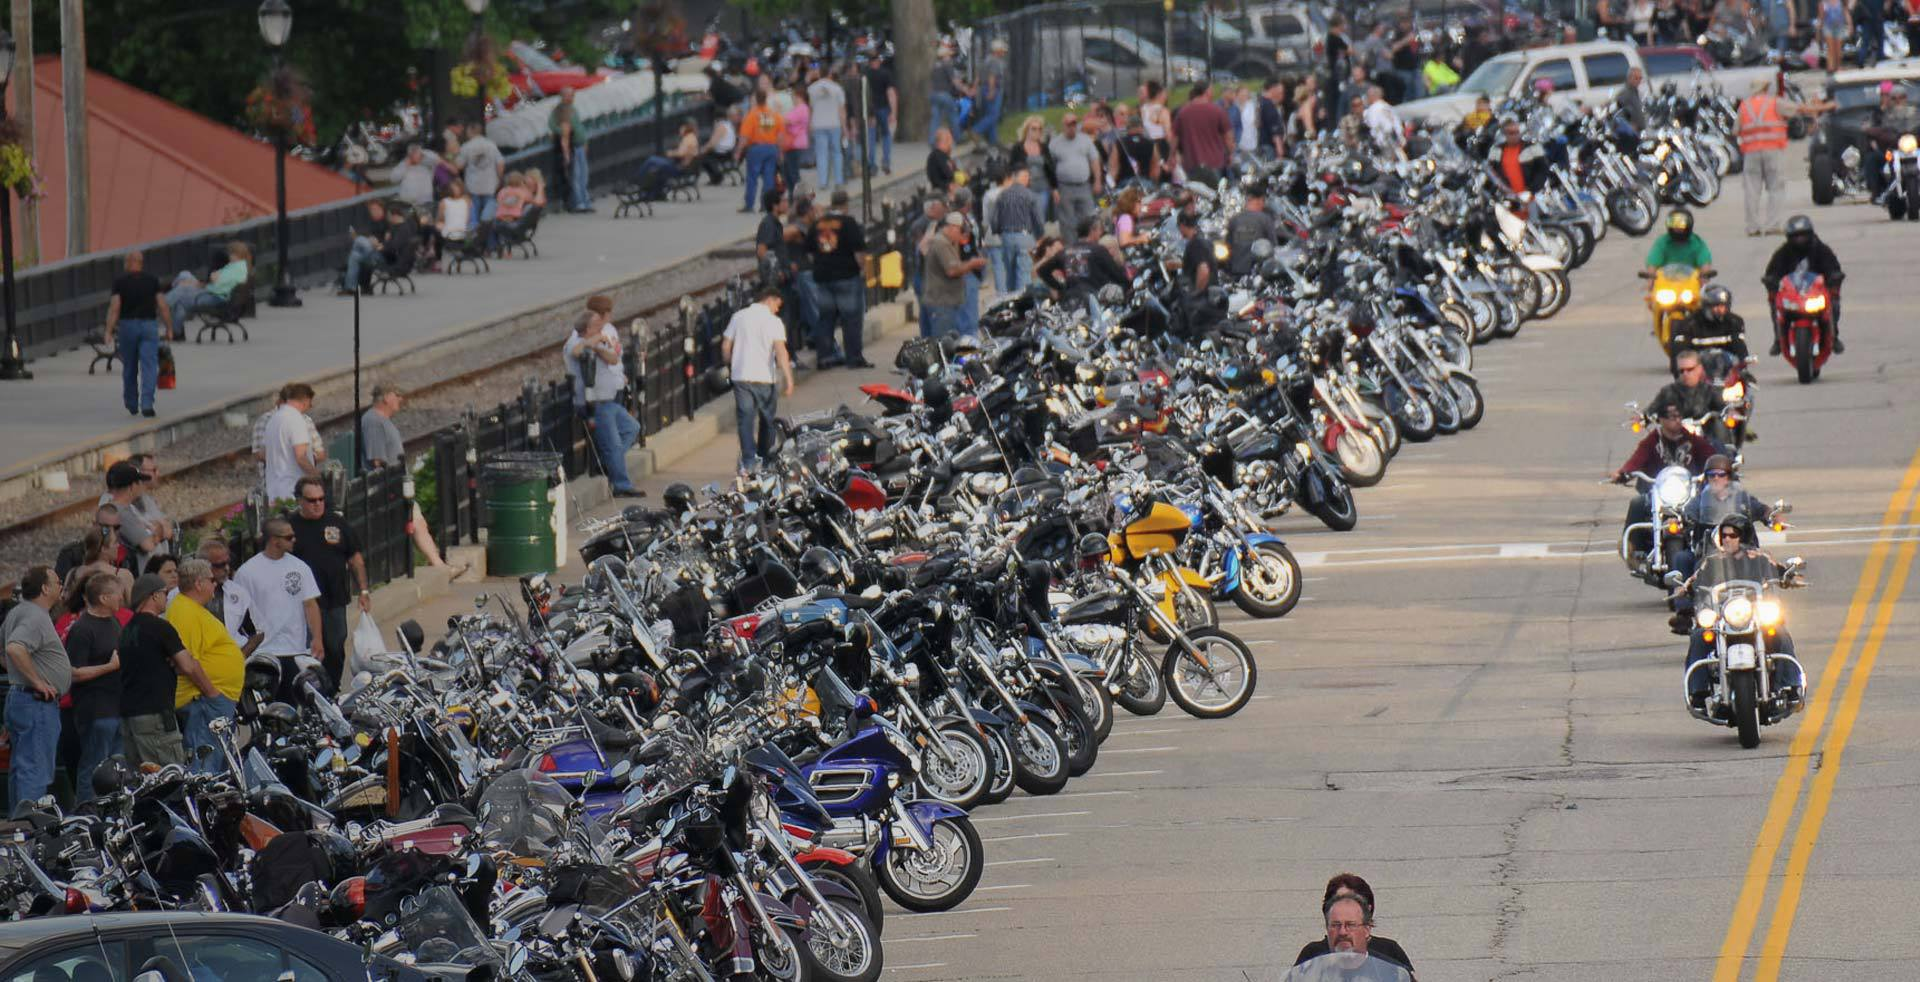 Expect a High Number of Arrests at Laconia Bike Week